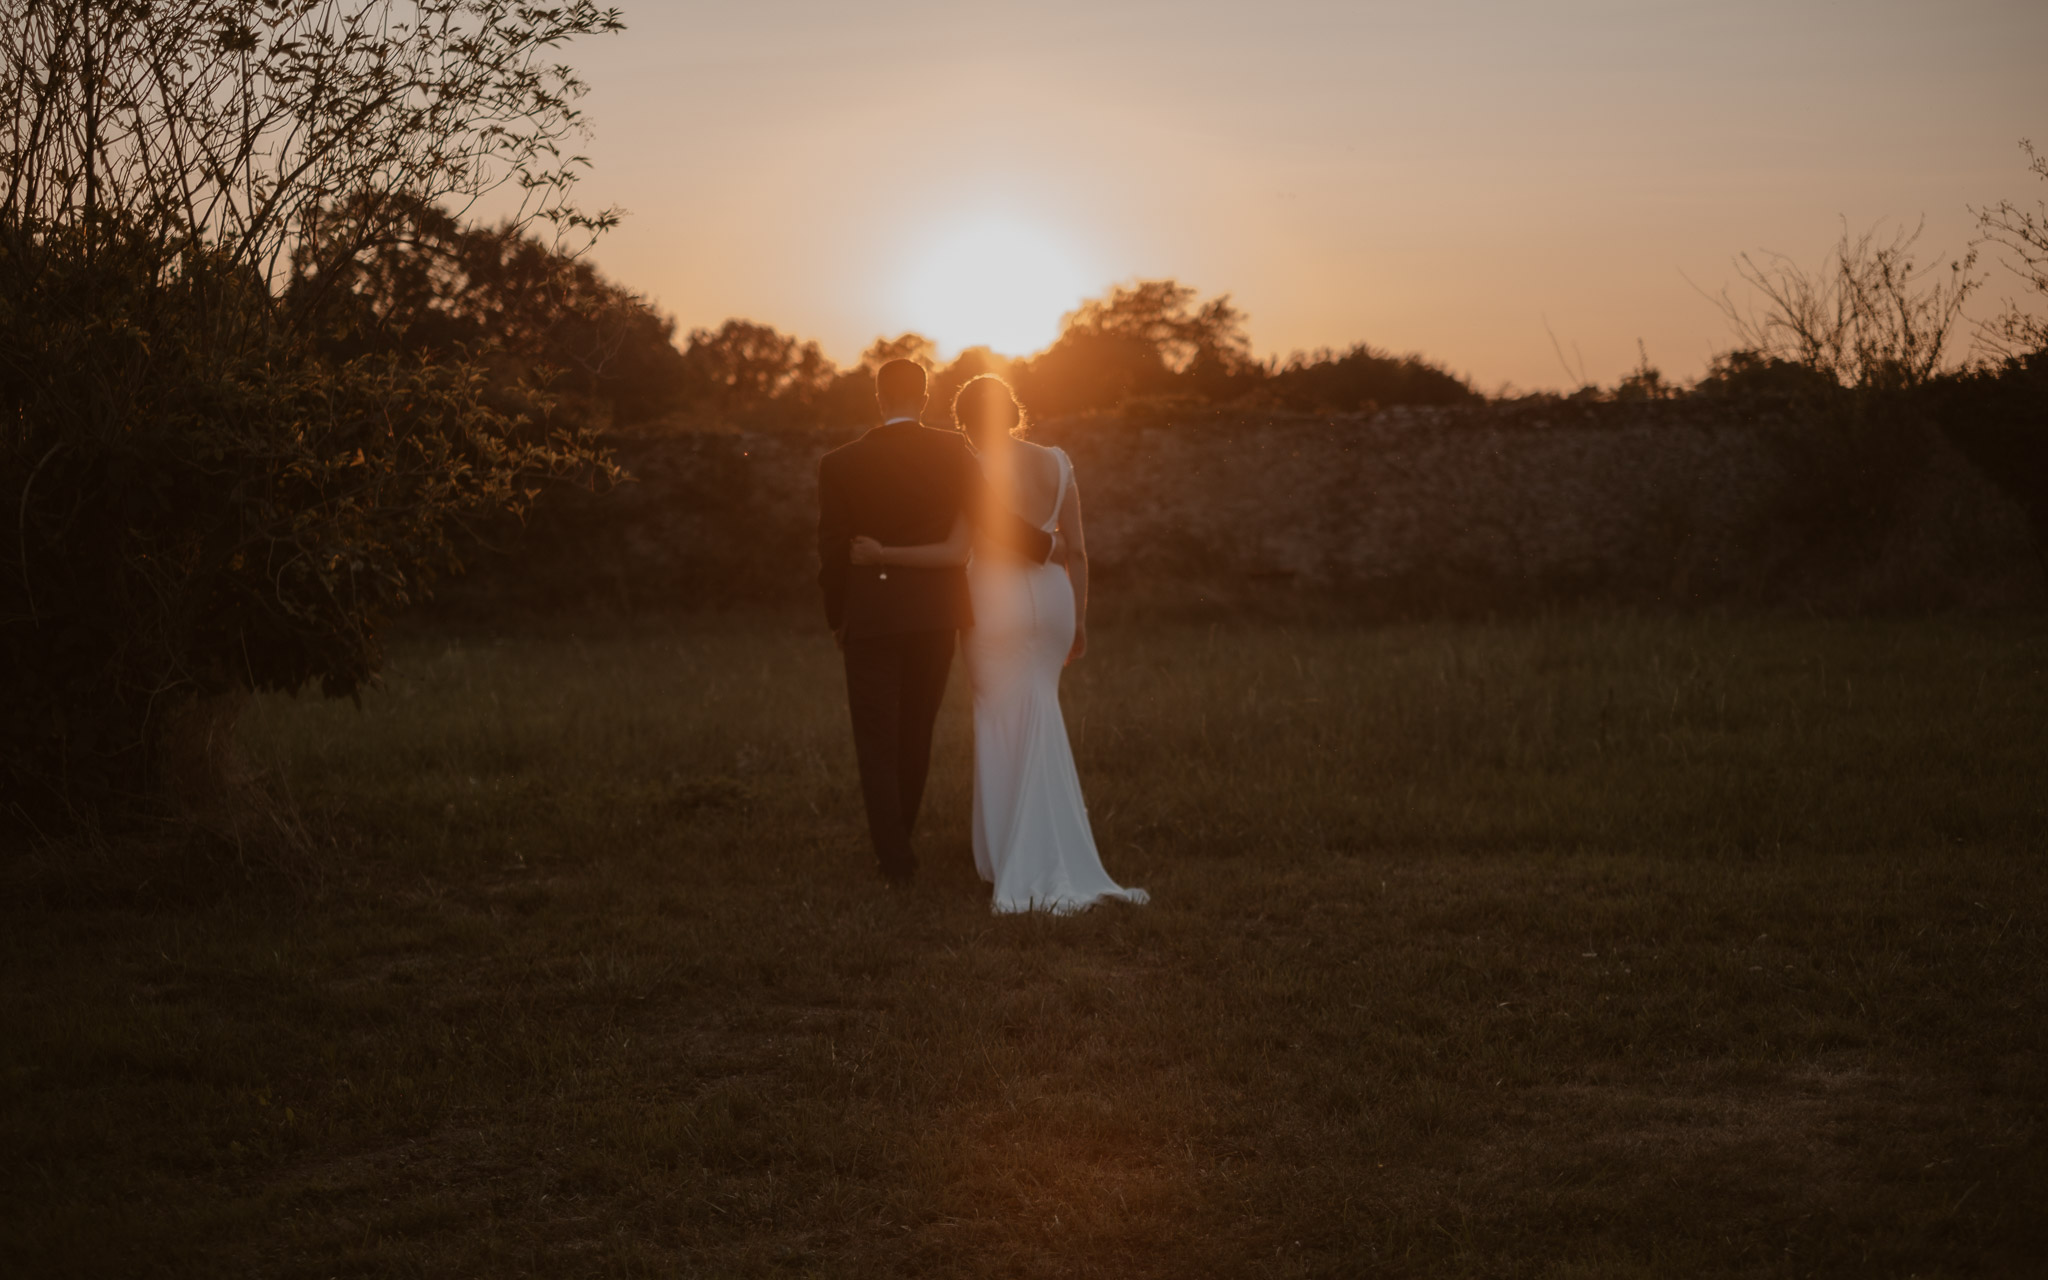 journee-mariage-reportage-photo-emotion-nantes-geoffrey-arnoldy-le-temps-d'une-pose-documentary-photographer-french-wedding